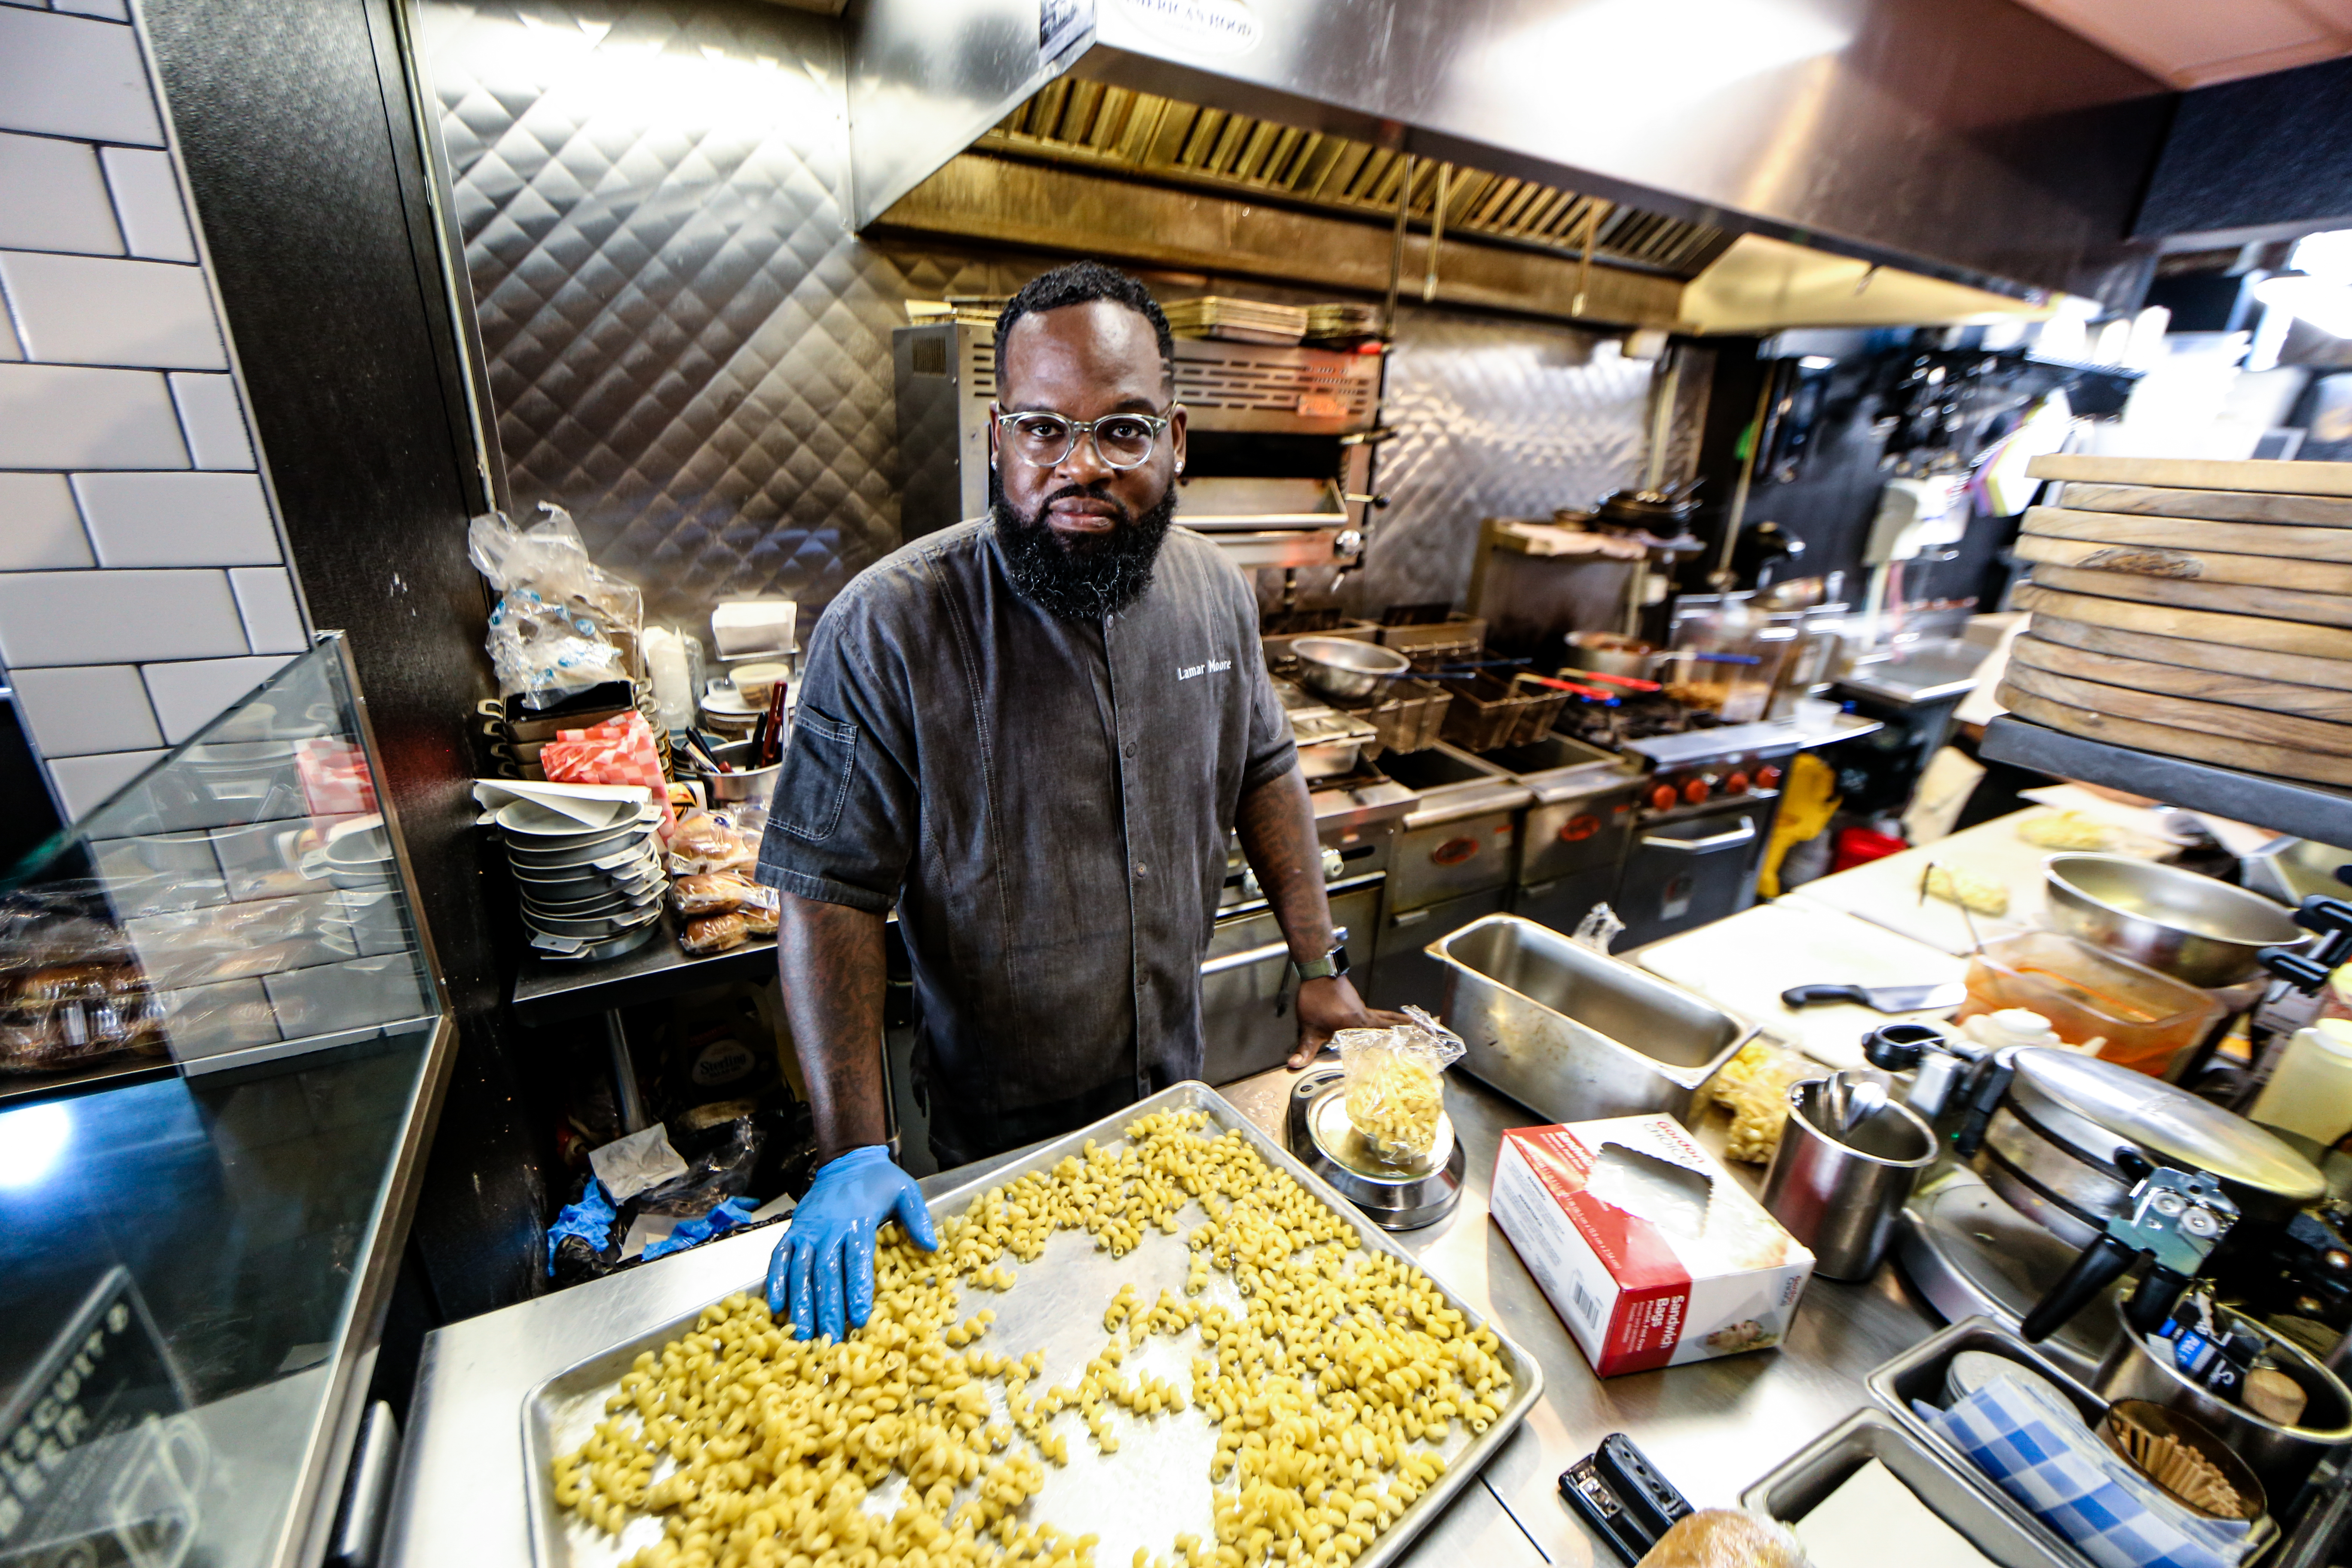 Chef Lamar Moore stands in the Swill Mill's kitchen, behind a full counter of cooking equipment and mise en place.